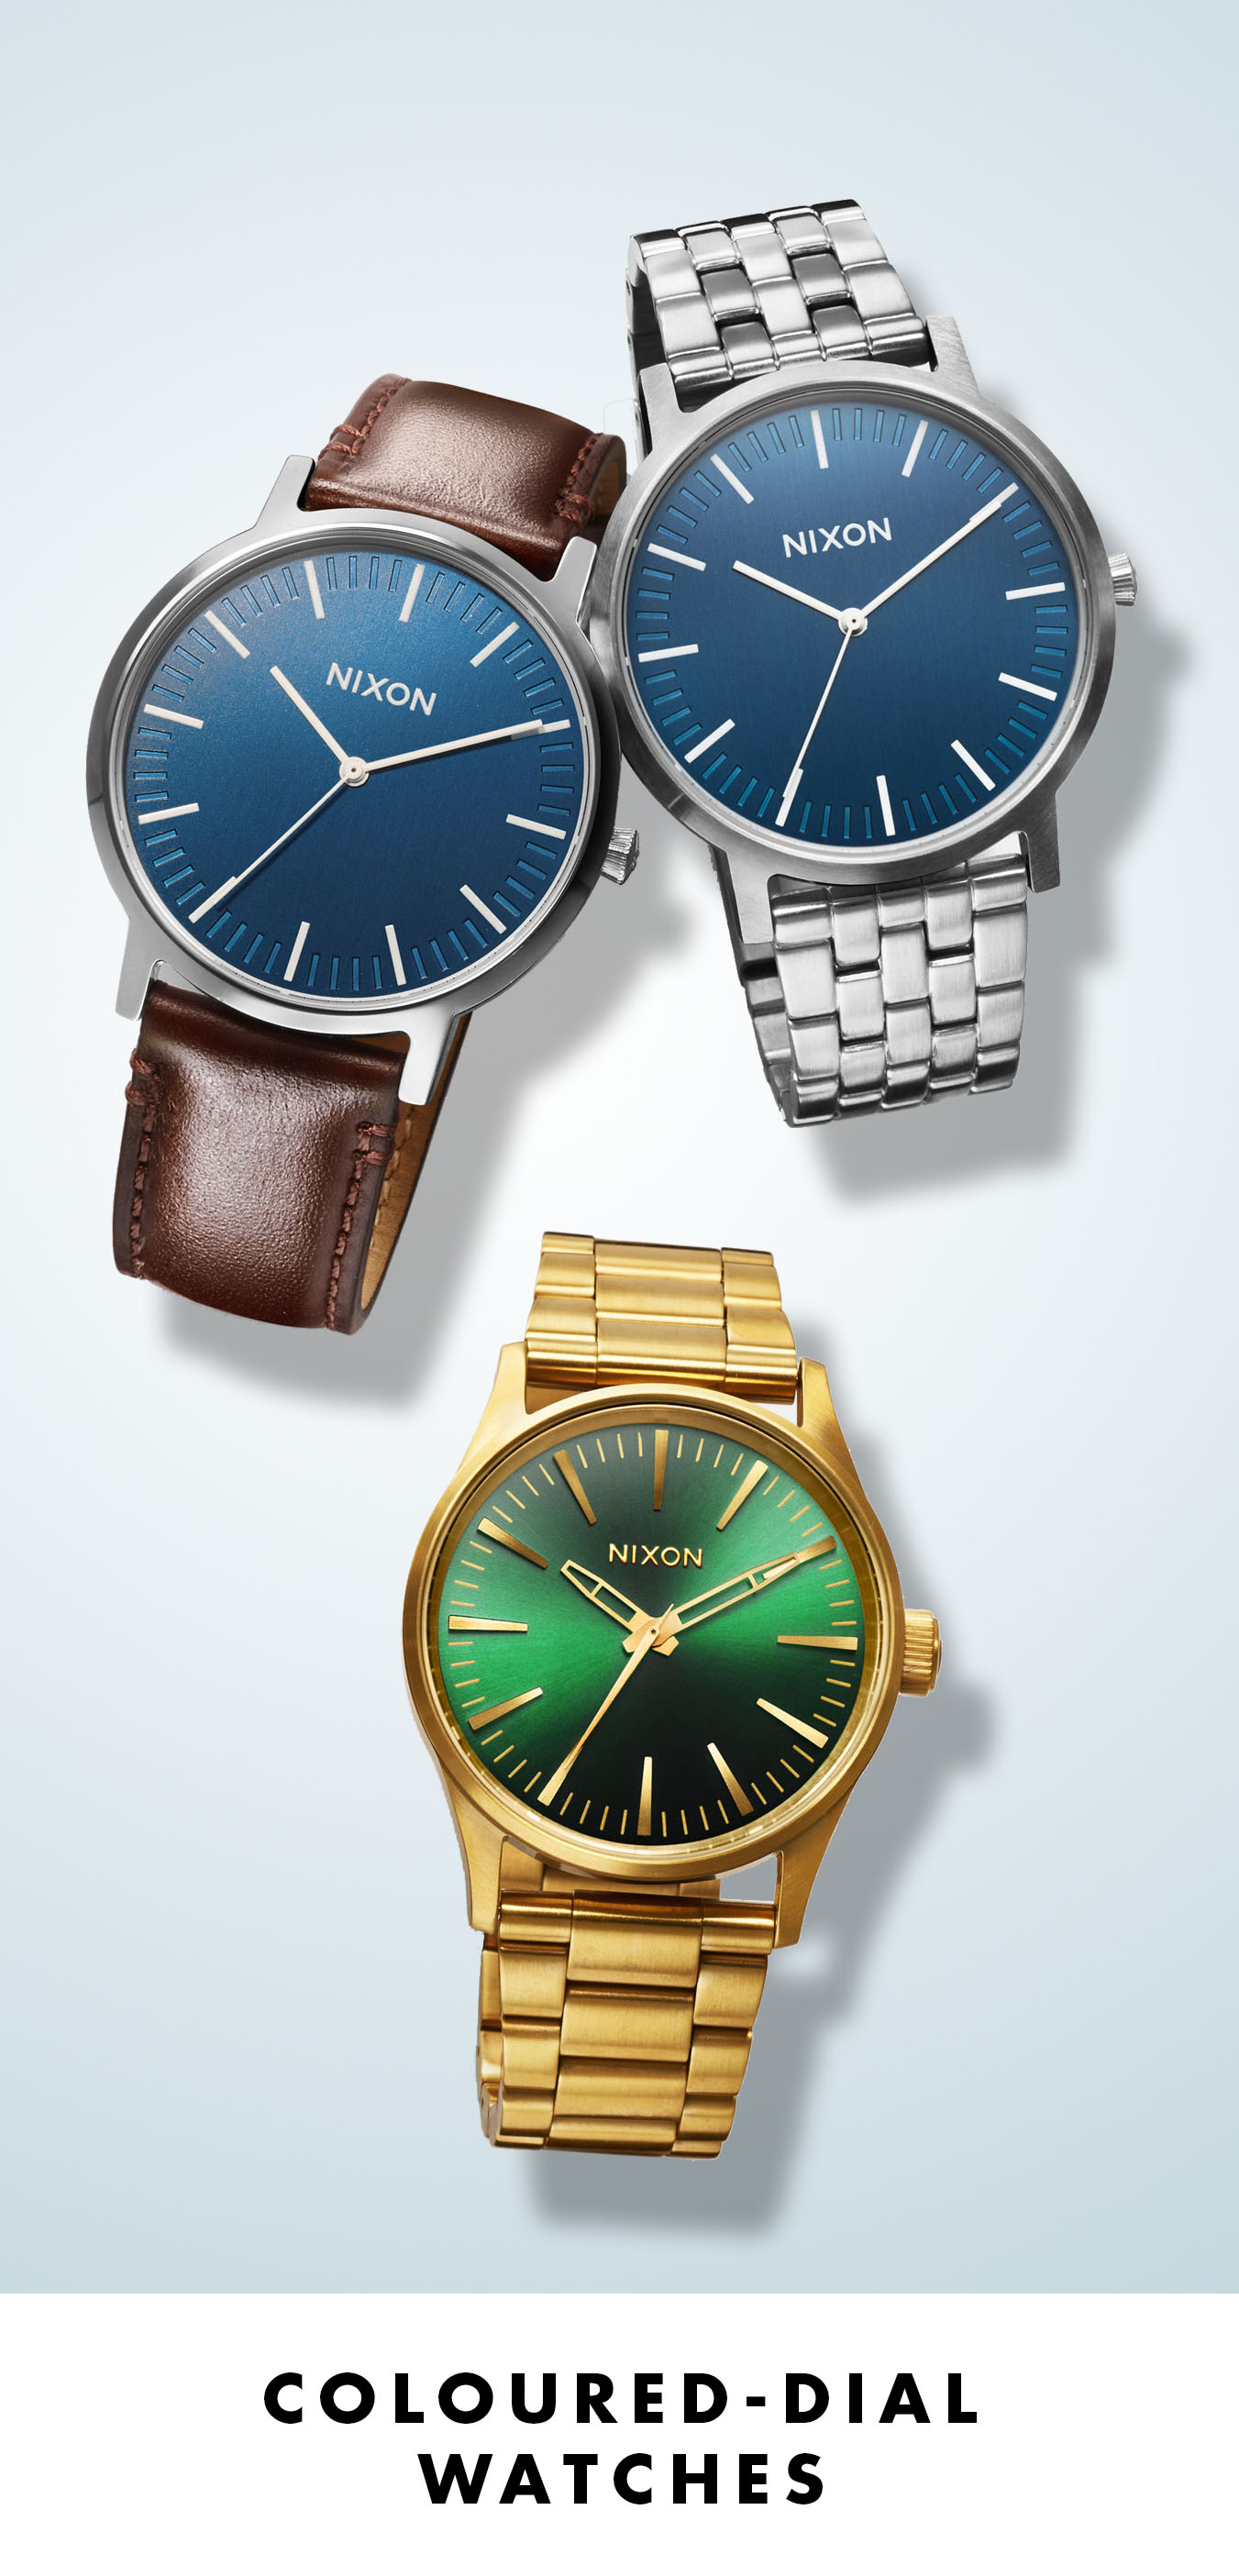 Coloured-Dial Watches